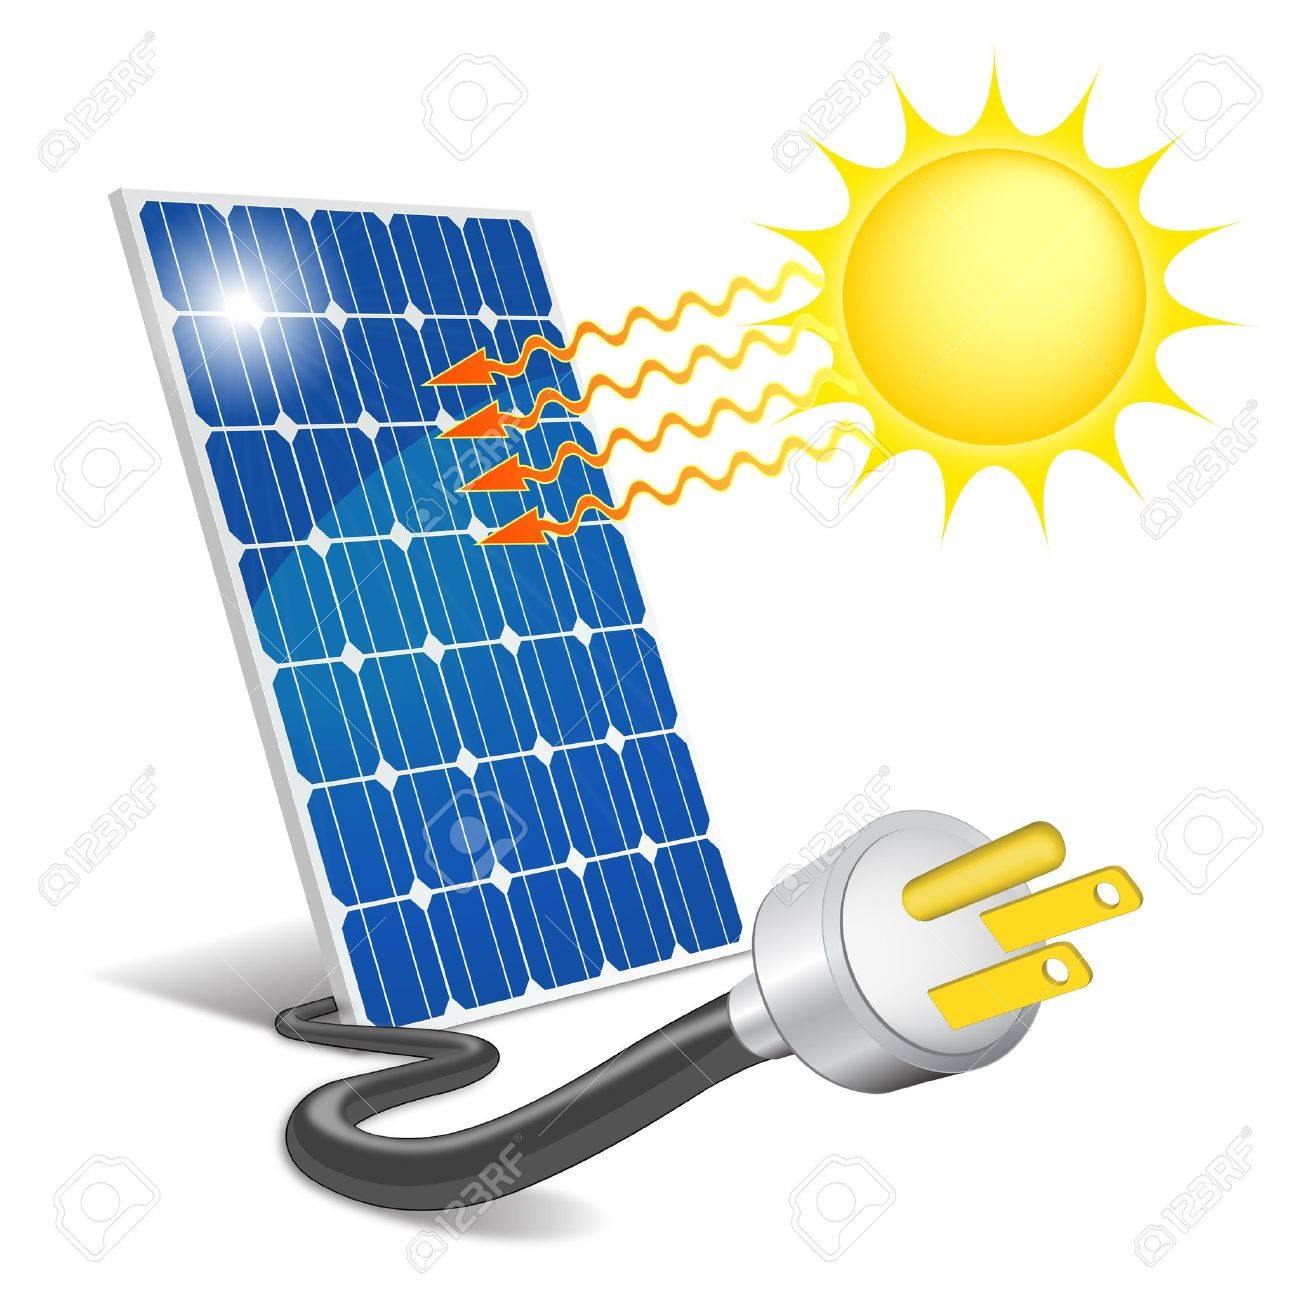 panel photovoltaic royalty free cliparts vectors and stock rh 123rf com renewable energy clipart solar energy pictures clip art